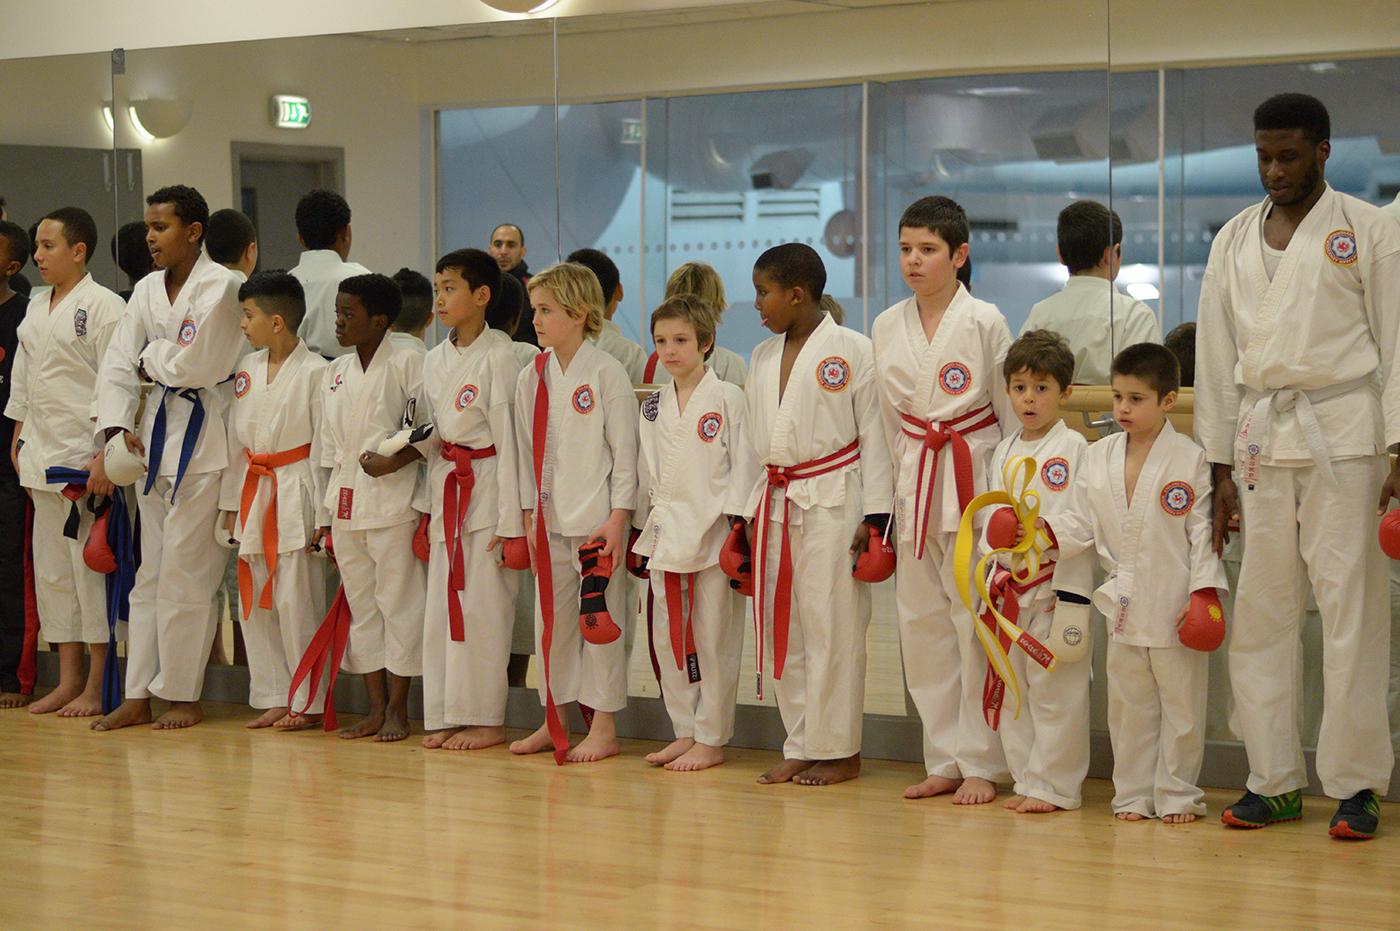 Line up after the Grading at Wavelengths Dojo